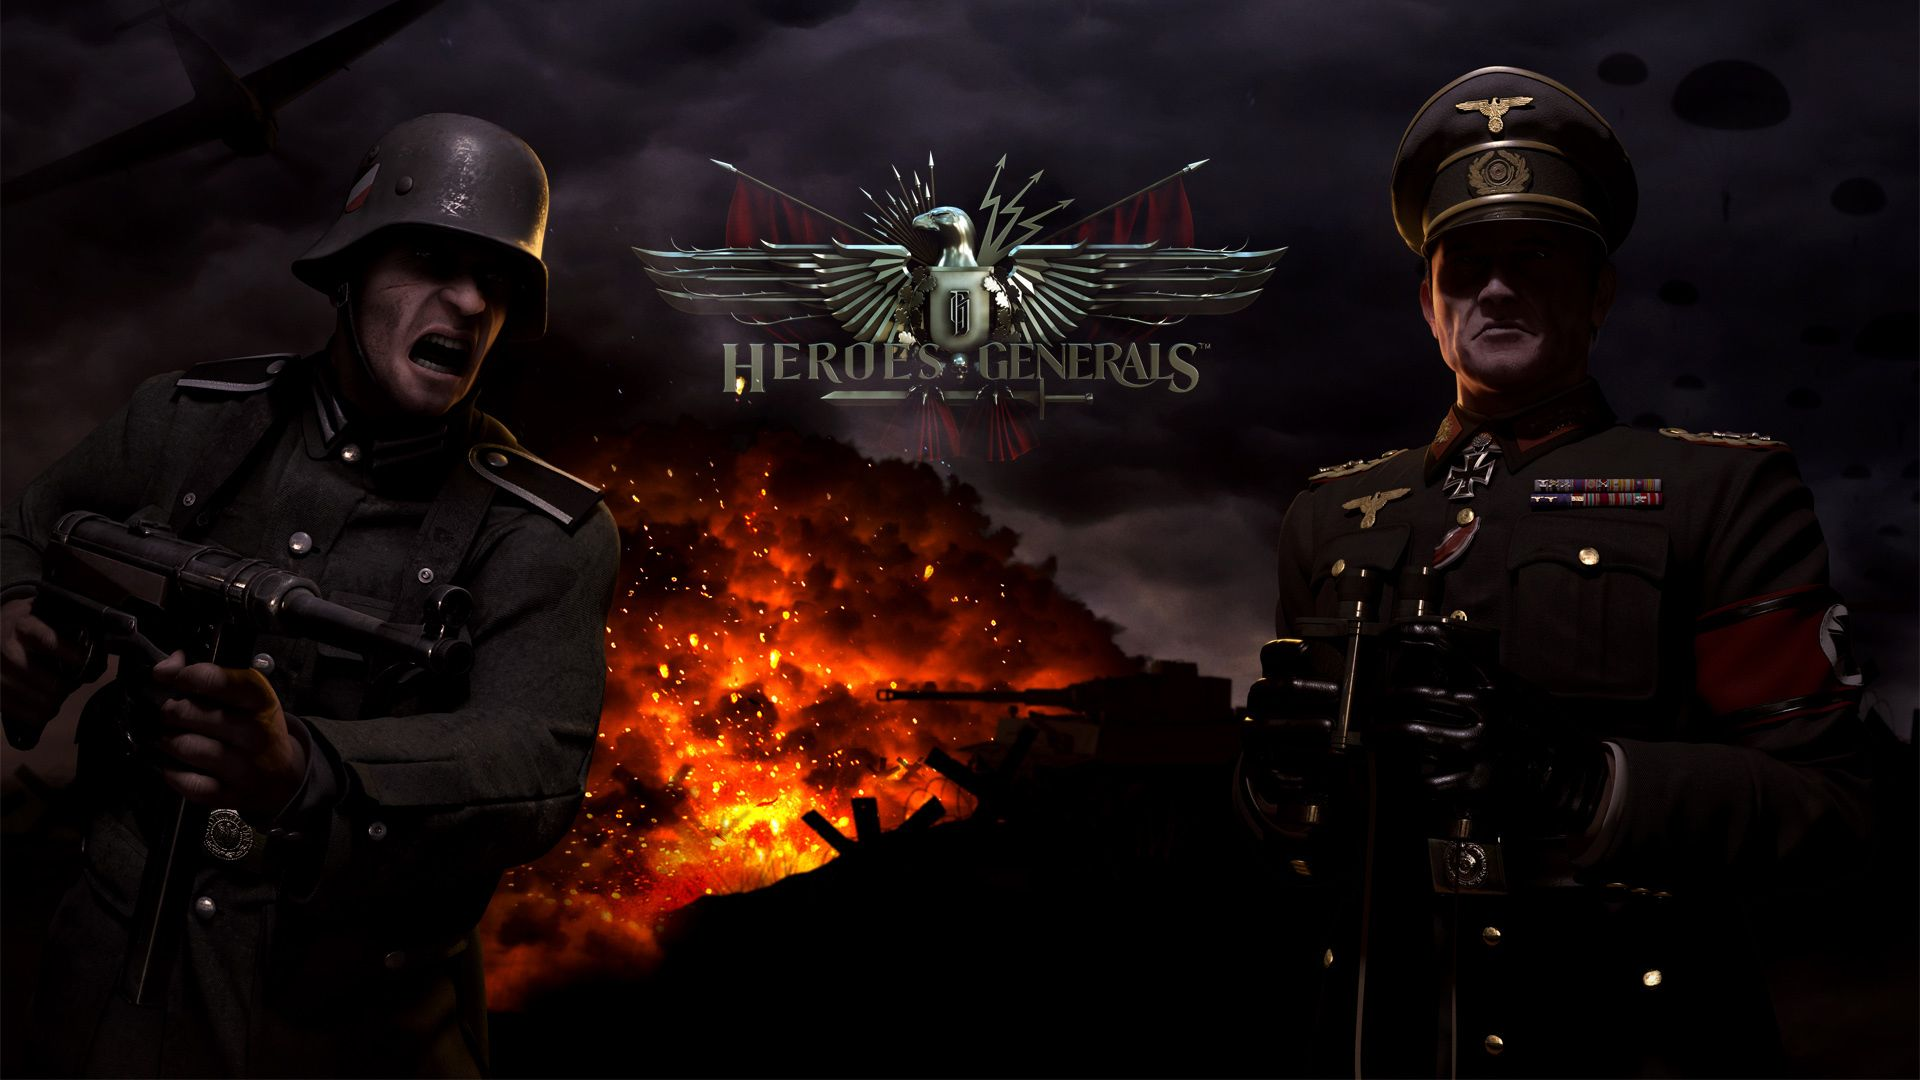 Heroes & Generals wallpaper 2